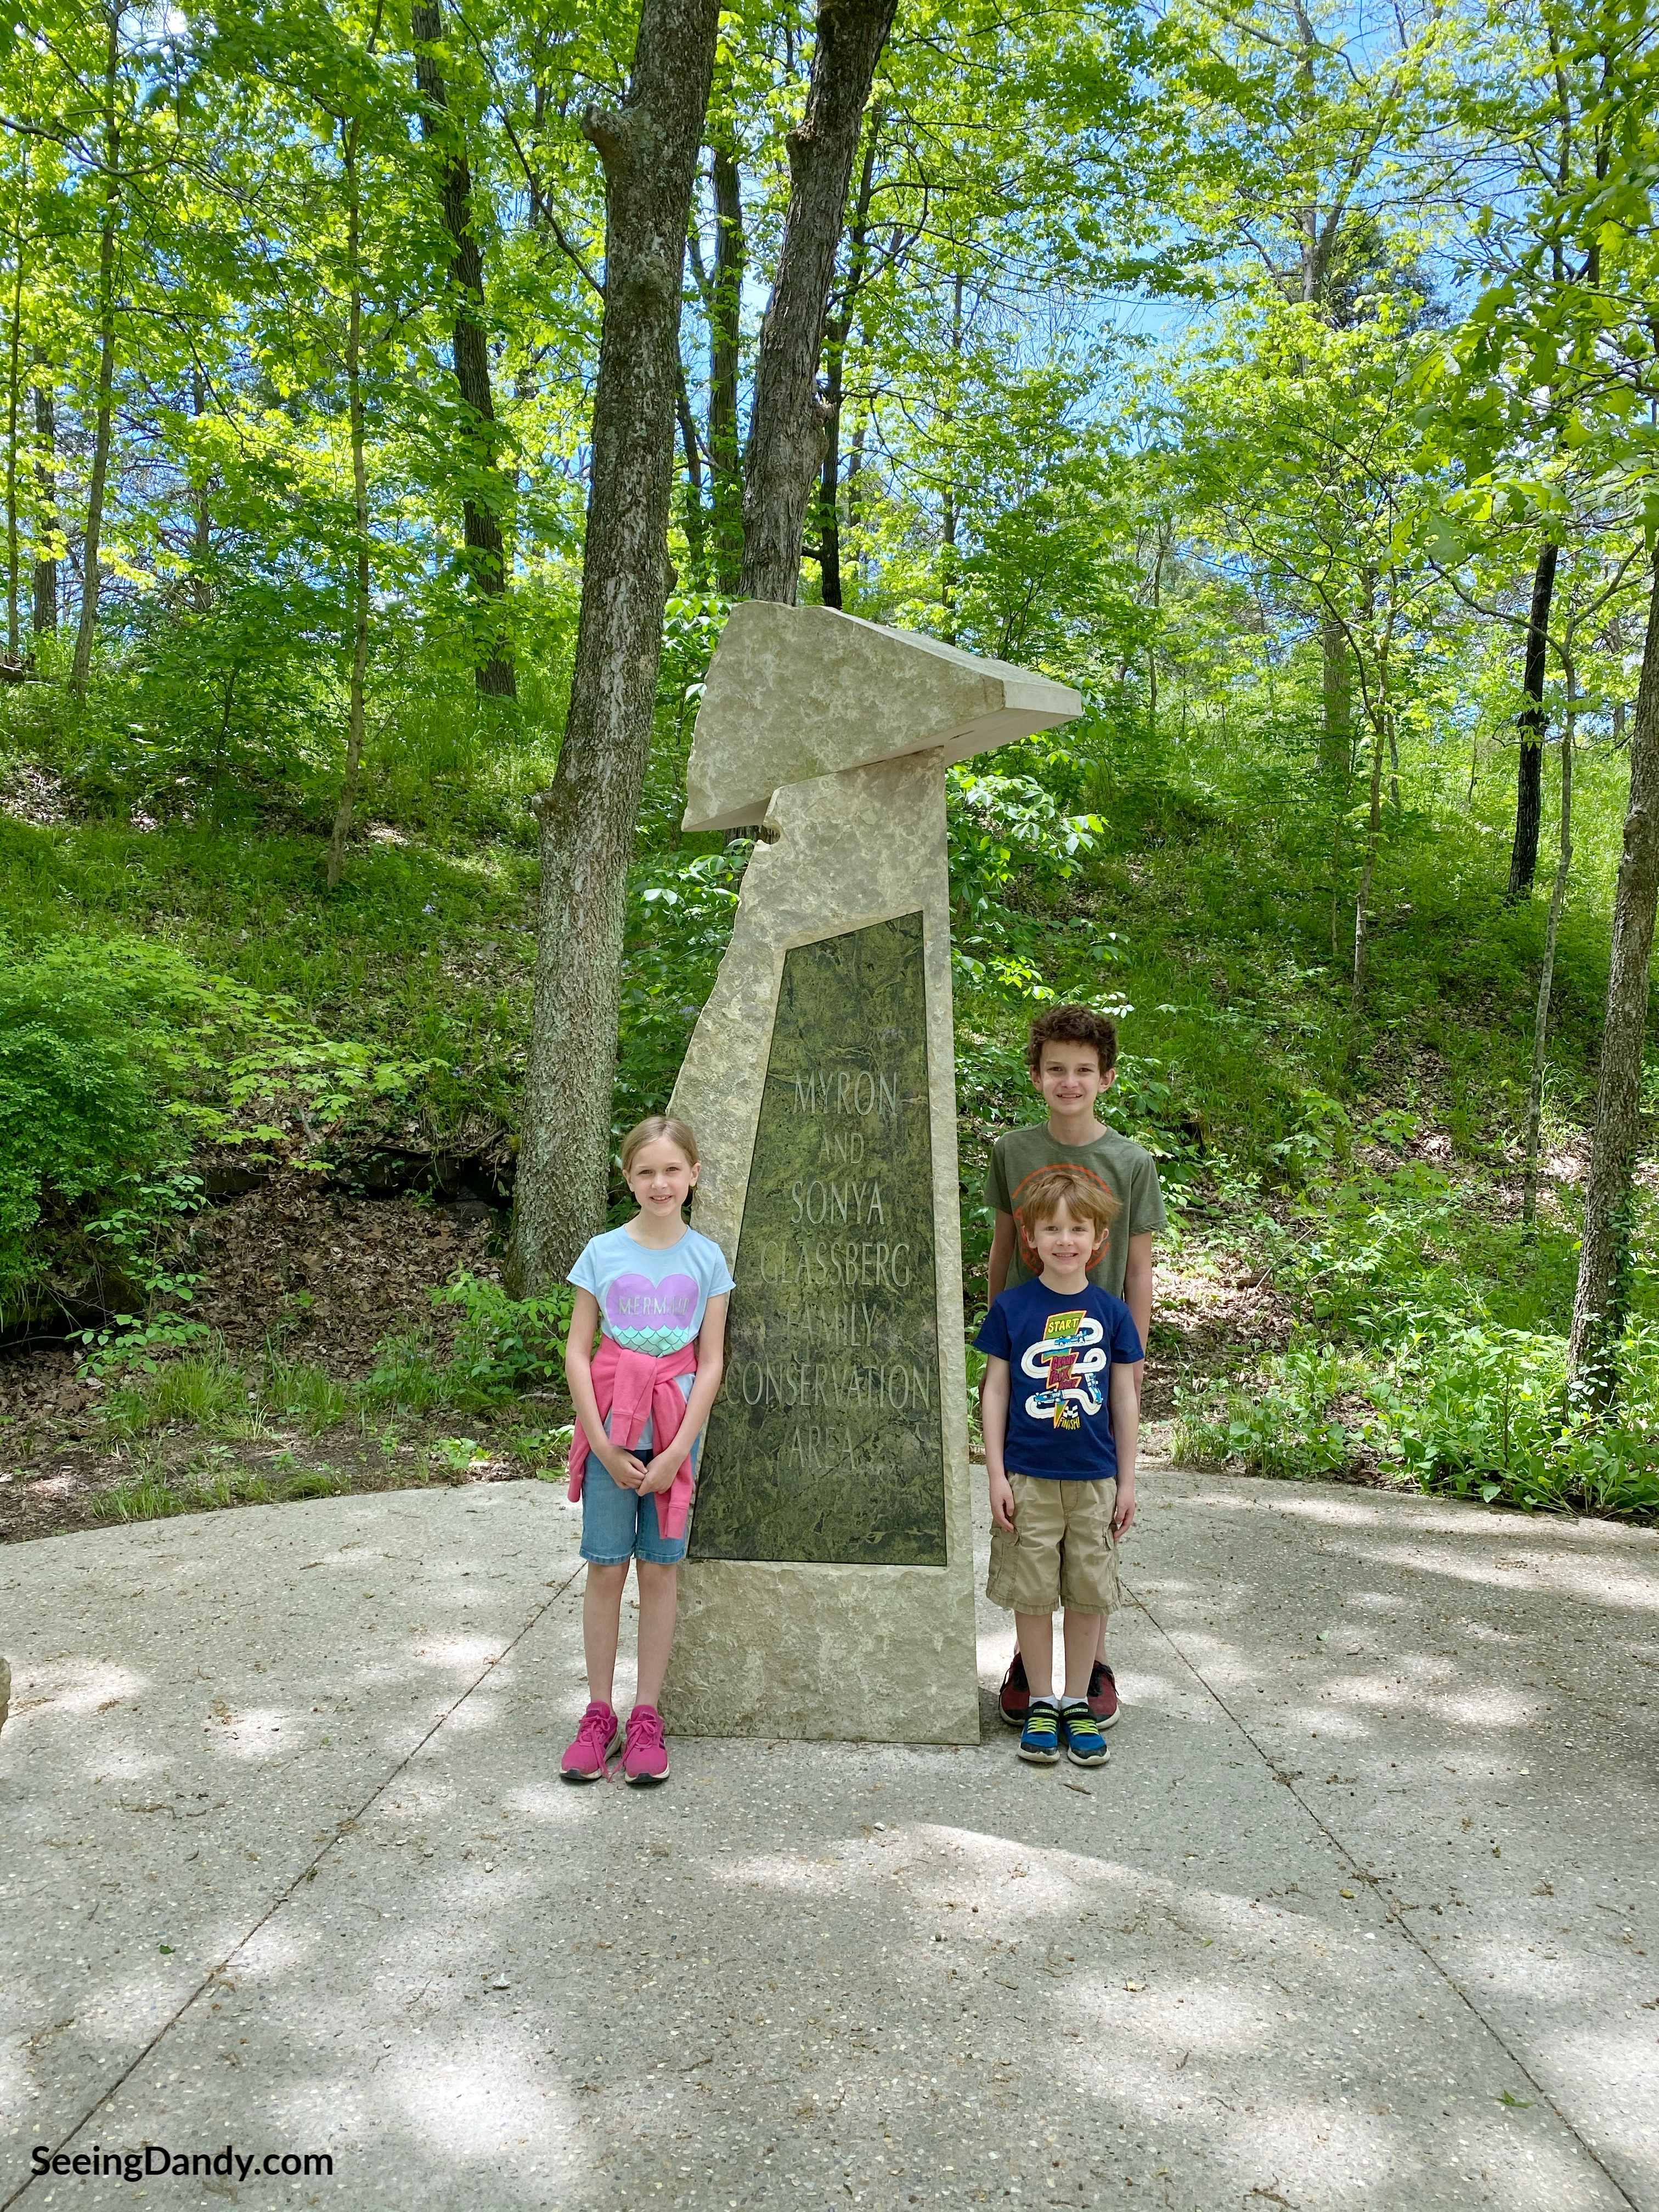 Myron and Sonya Glassberg Family Conservation Area monument